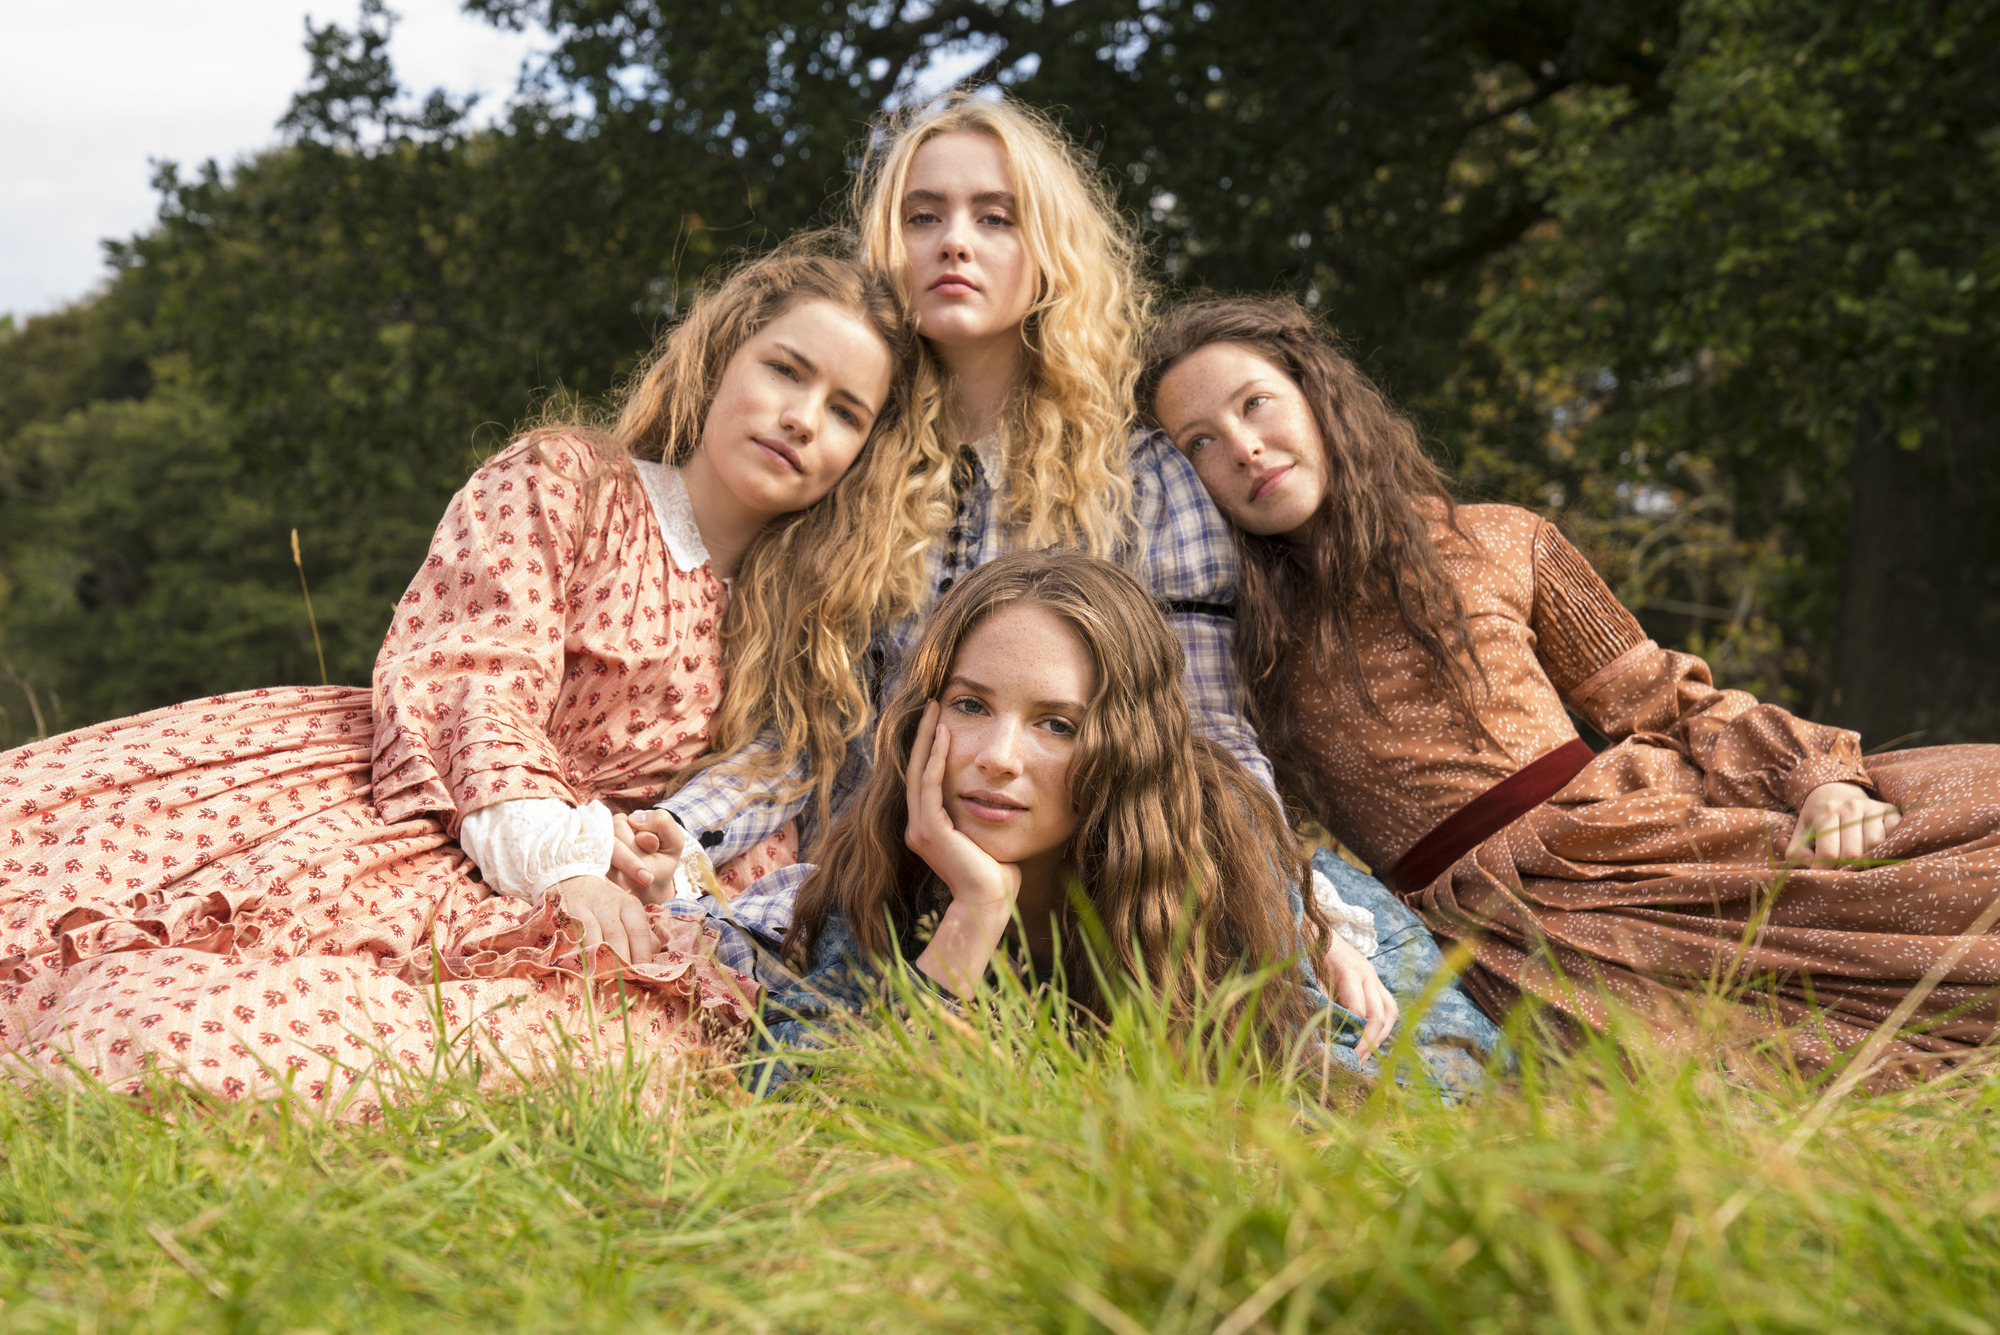 WARNING: Embargoed for publication until 00:00:01 on 09/12/2017 - Programme Name: Little Women - TX: 26/12/2017 - Episode: n/a (No. n/a) - Picture Shows: +++EMBARGOED UNTIL 00.01 HOURS SATURDAY DECEMBER 9TH, 2017+++ Meg March (WILLA FITZGERALD), Amy March (KATHRYN NEWTON), Jo March (MAYA HAWKE), Beth March (ANNES ELWY) - (C) Playground - Photographer: Patrick Redmond (BBC, TL)